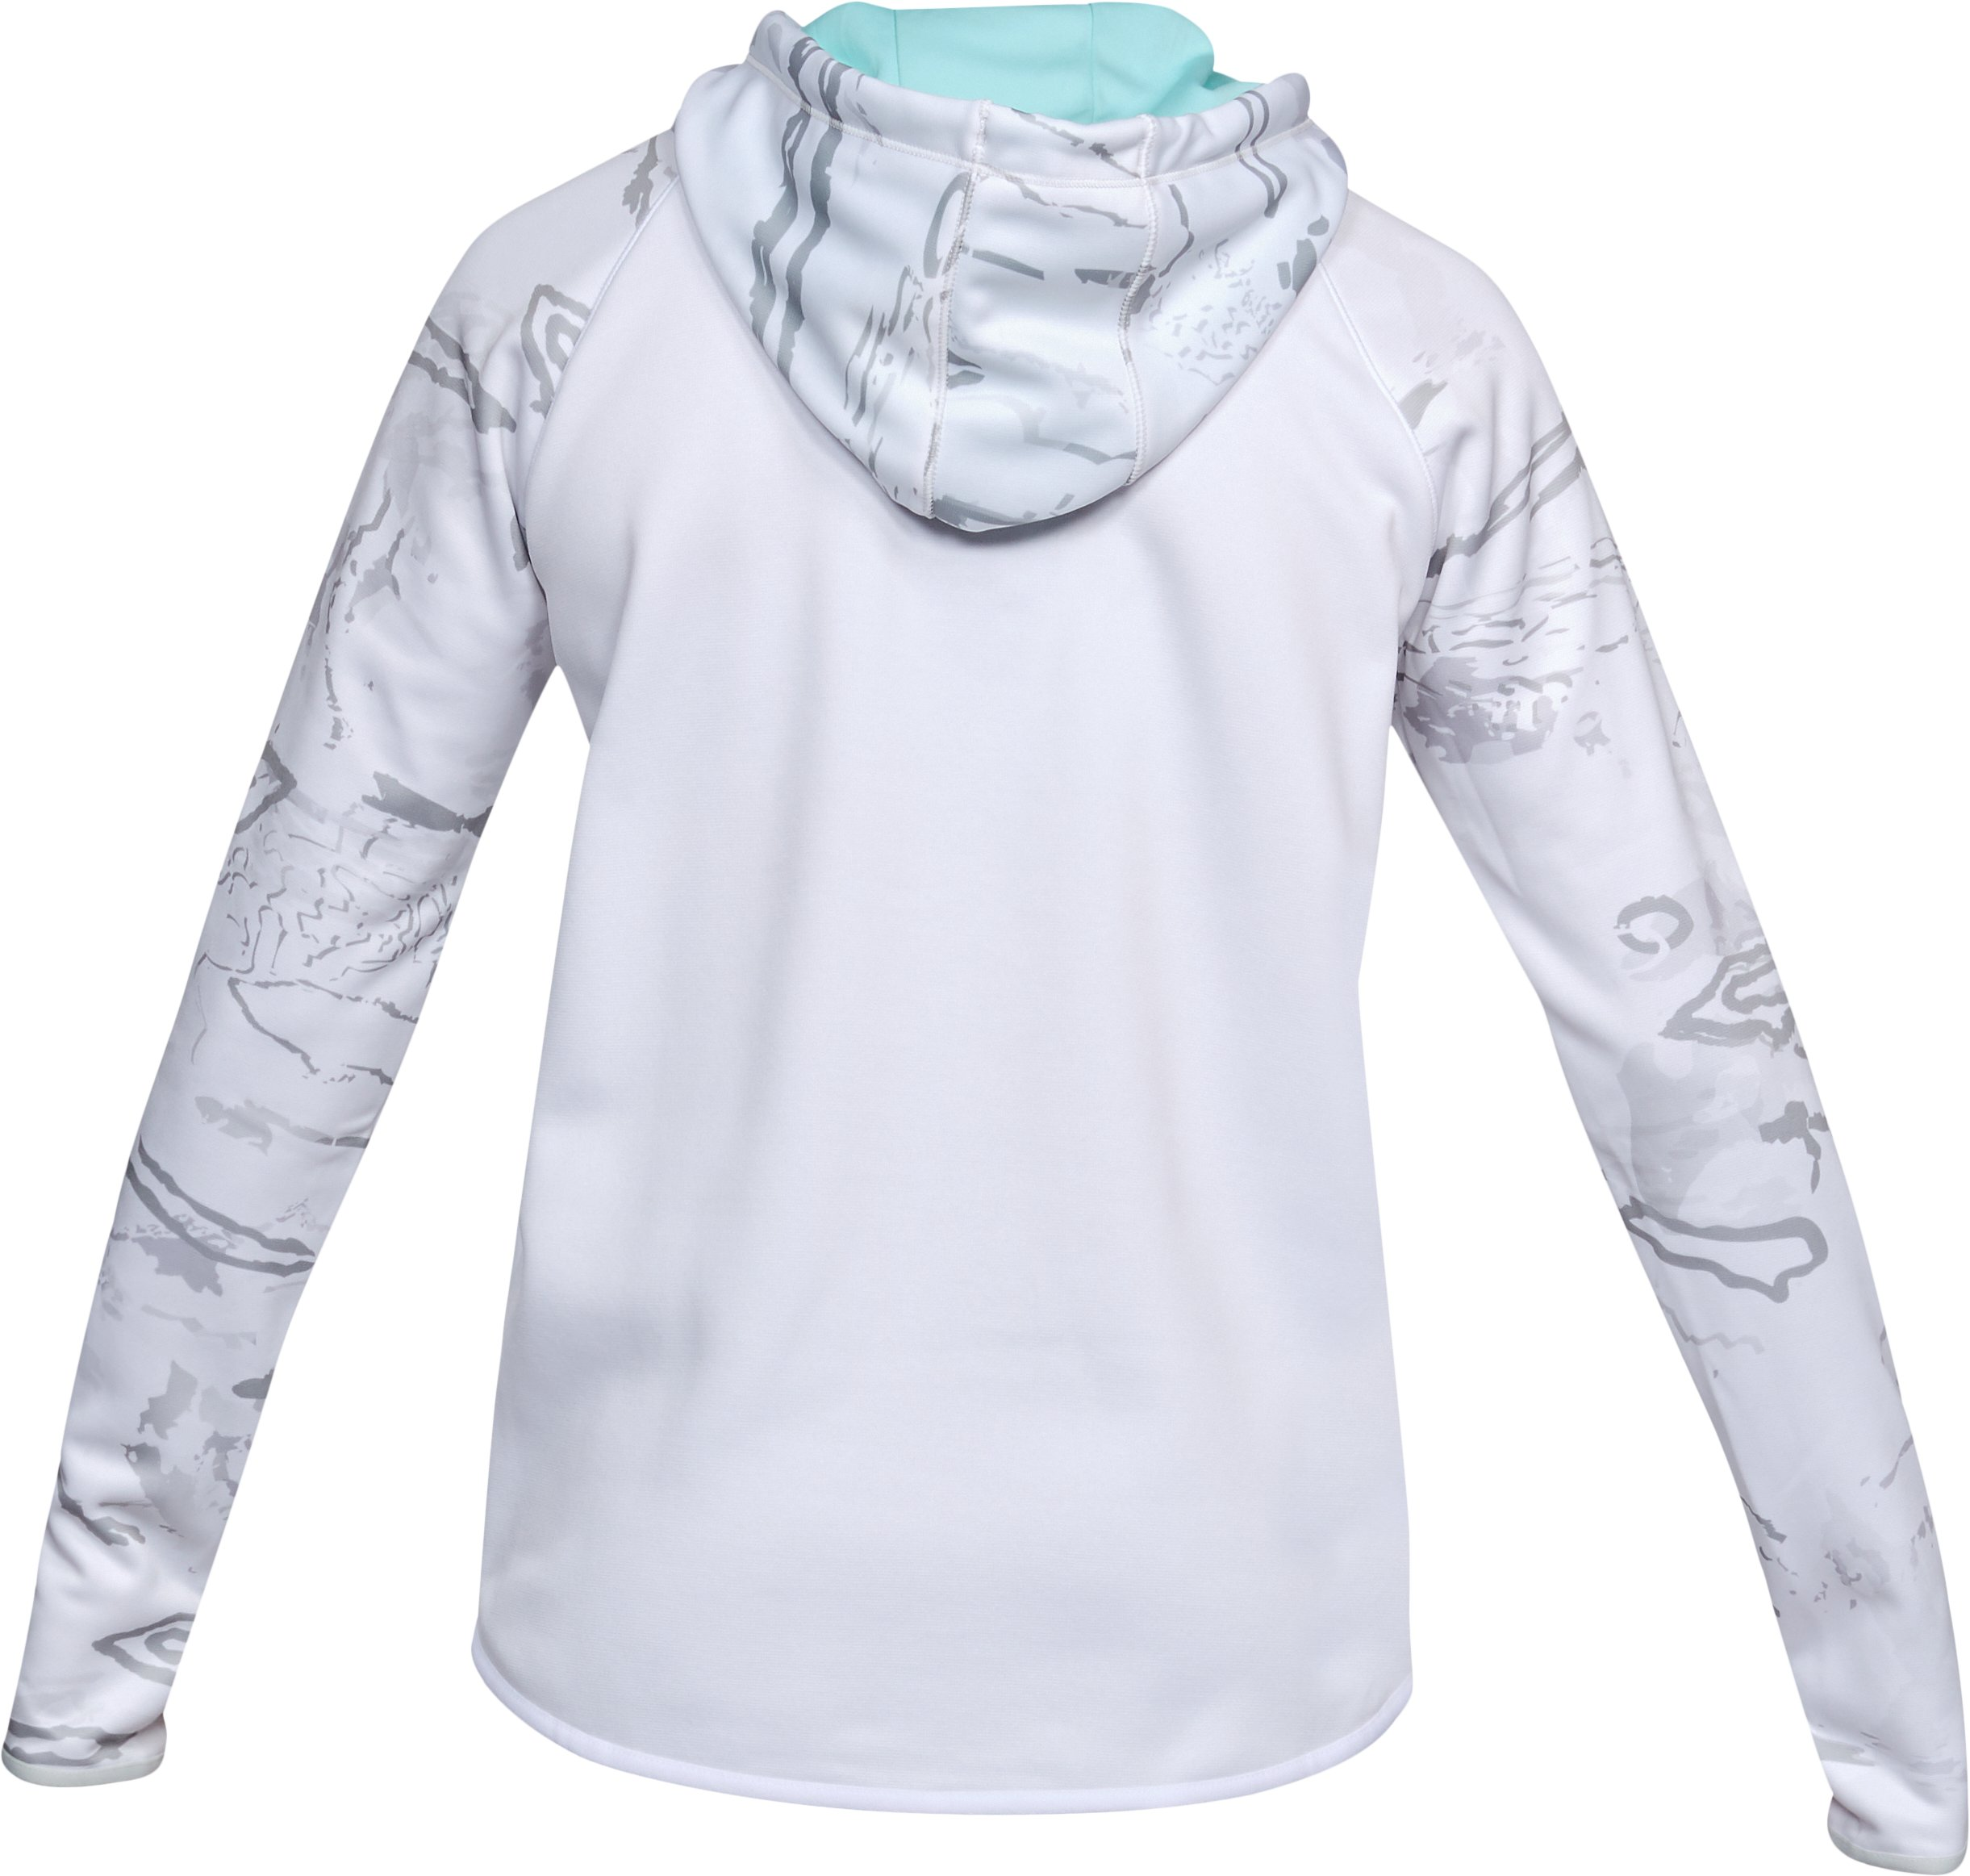 Women's Armour® Fleece Camo Blocked Hoodie, White, undefined